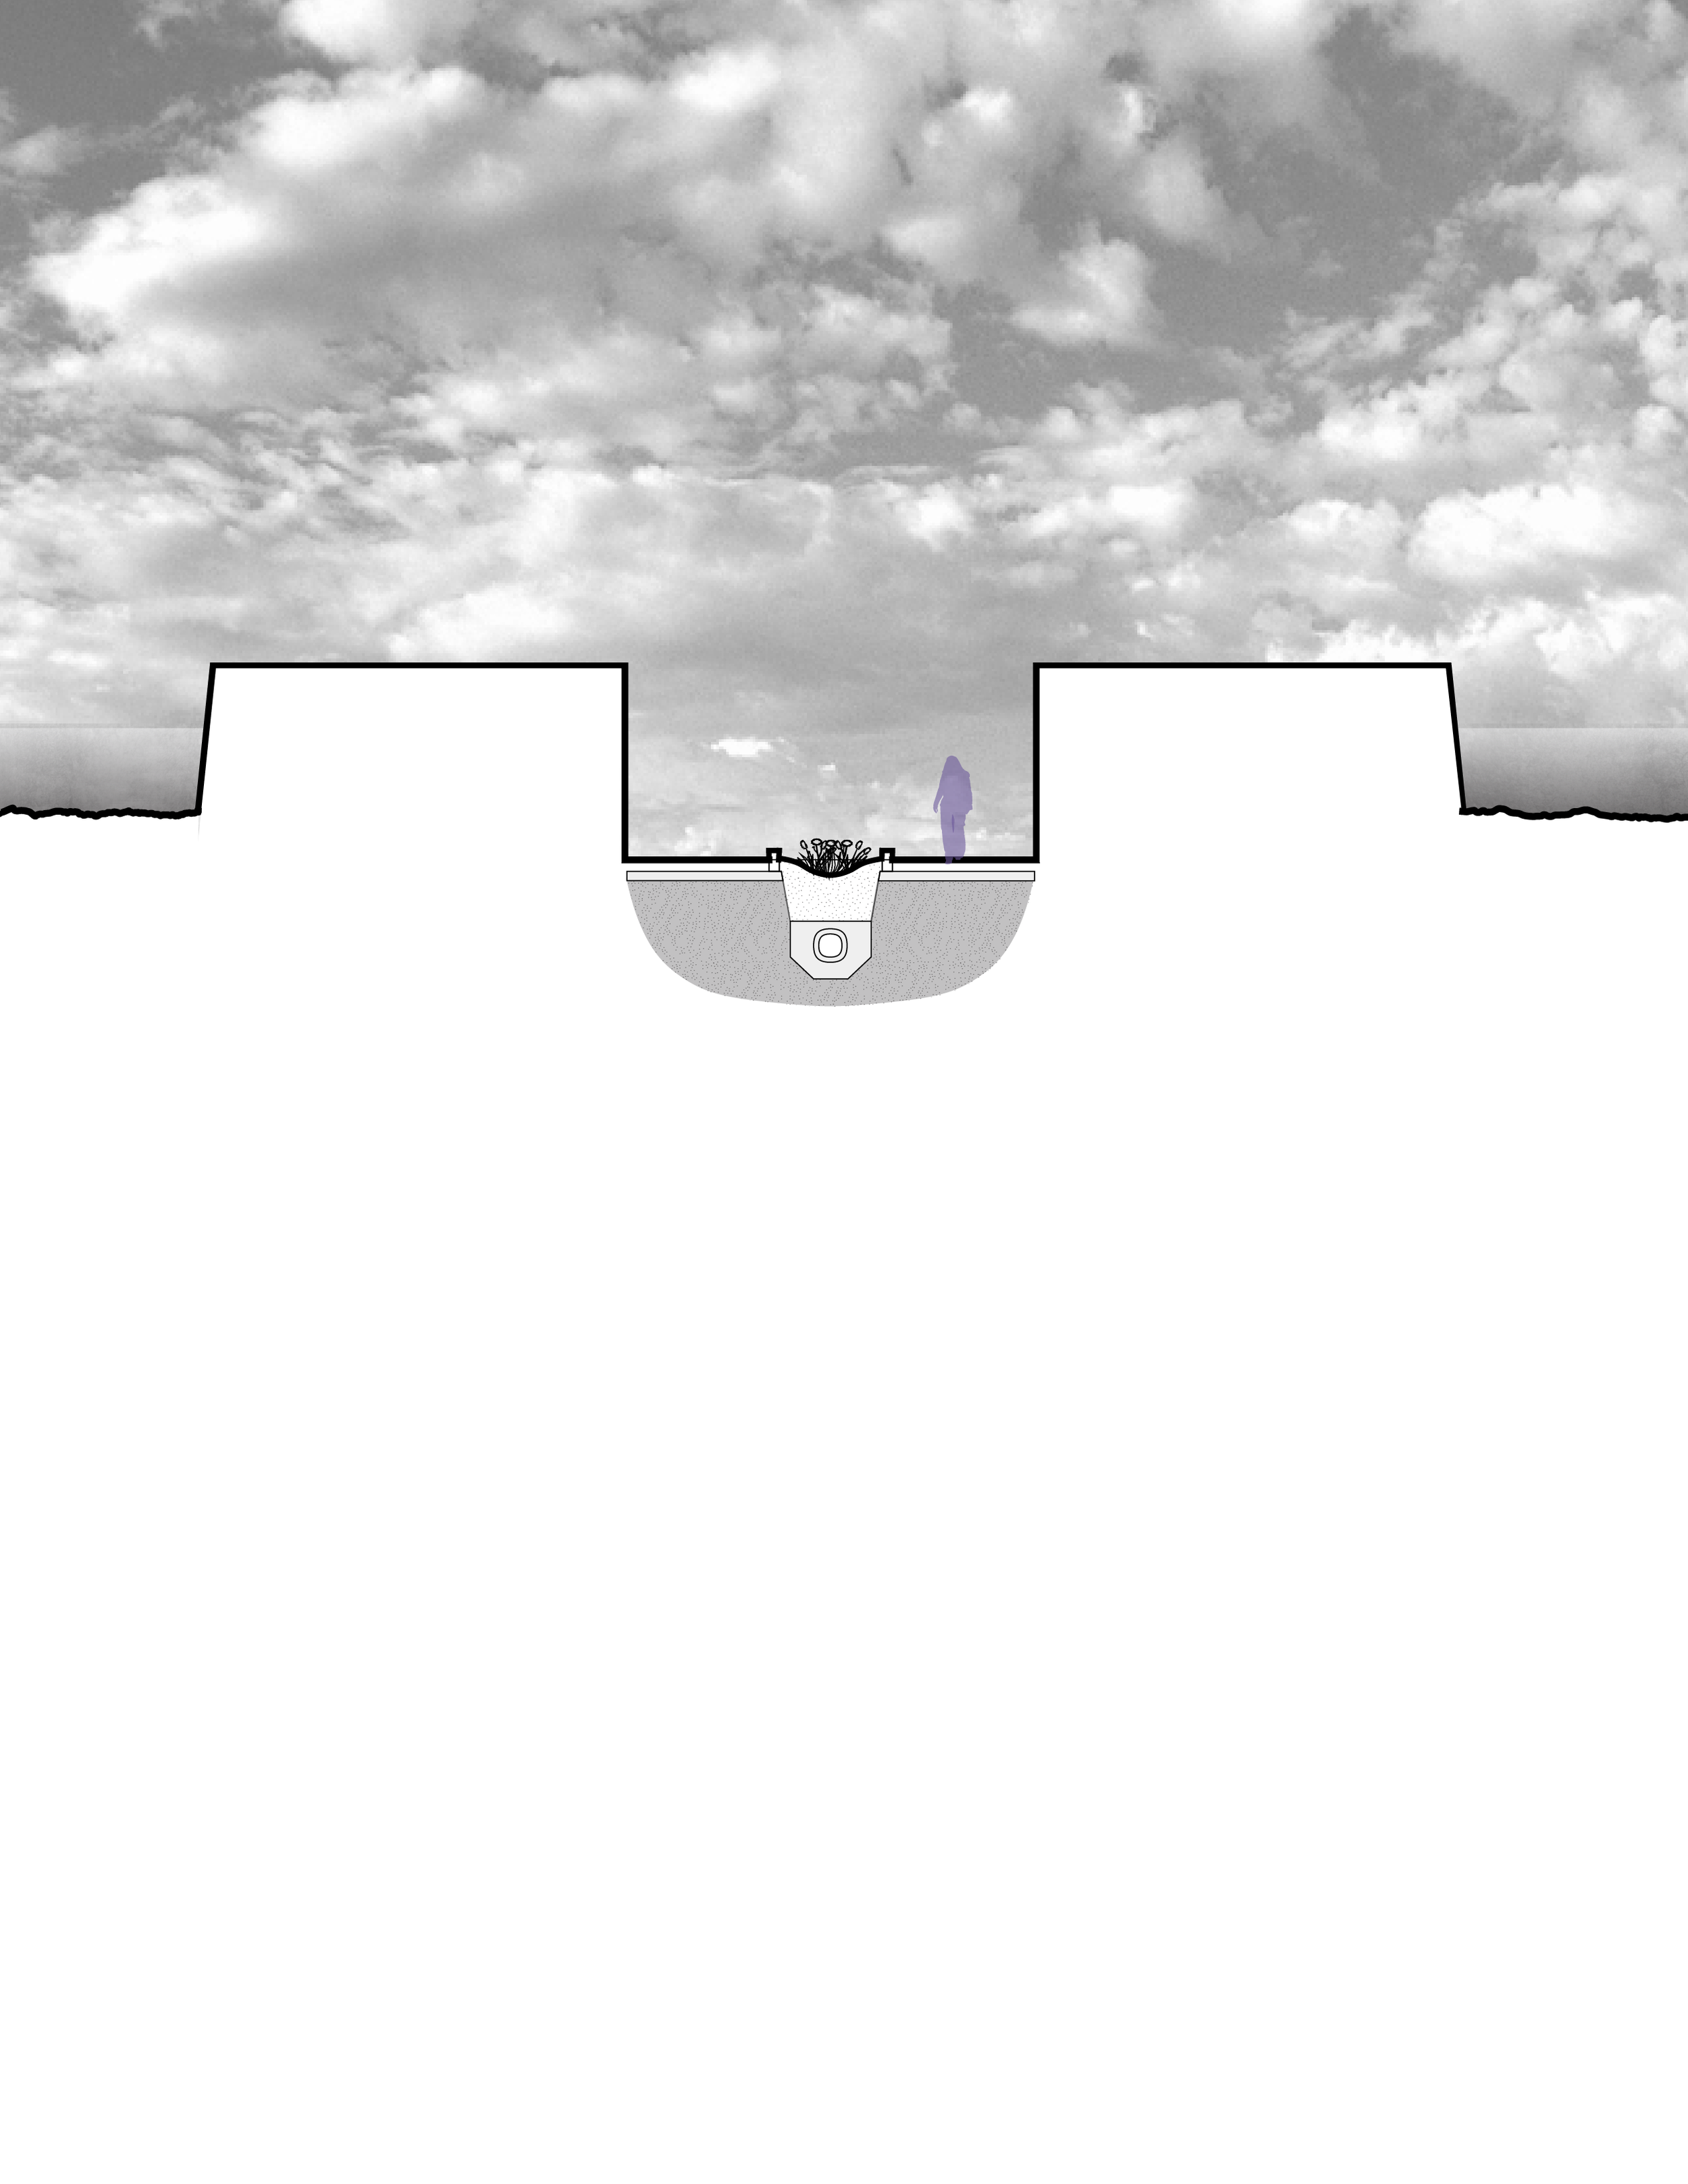 Lateral section through beginning of inhabitable retaining wall, showing start of outdoor bio-swale and retaining walls.